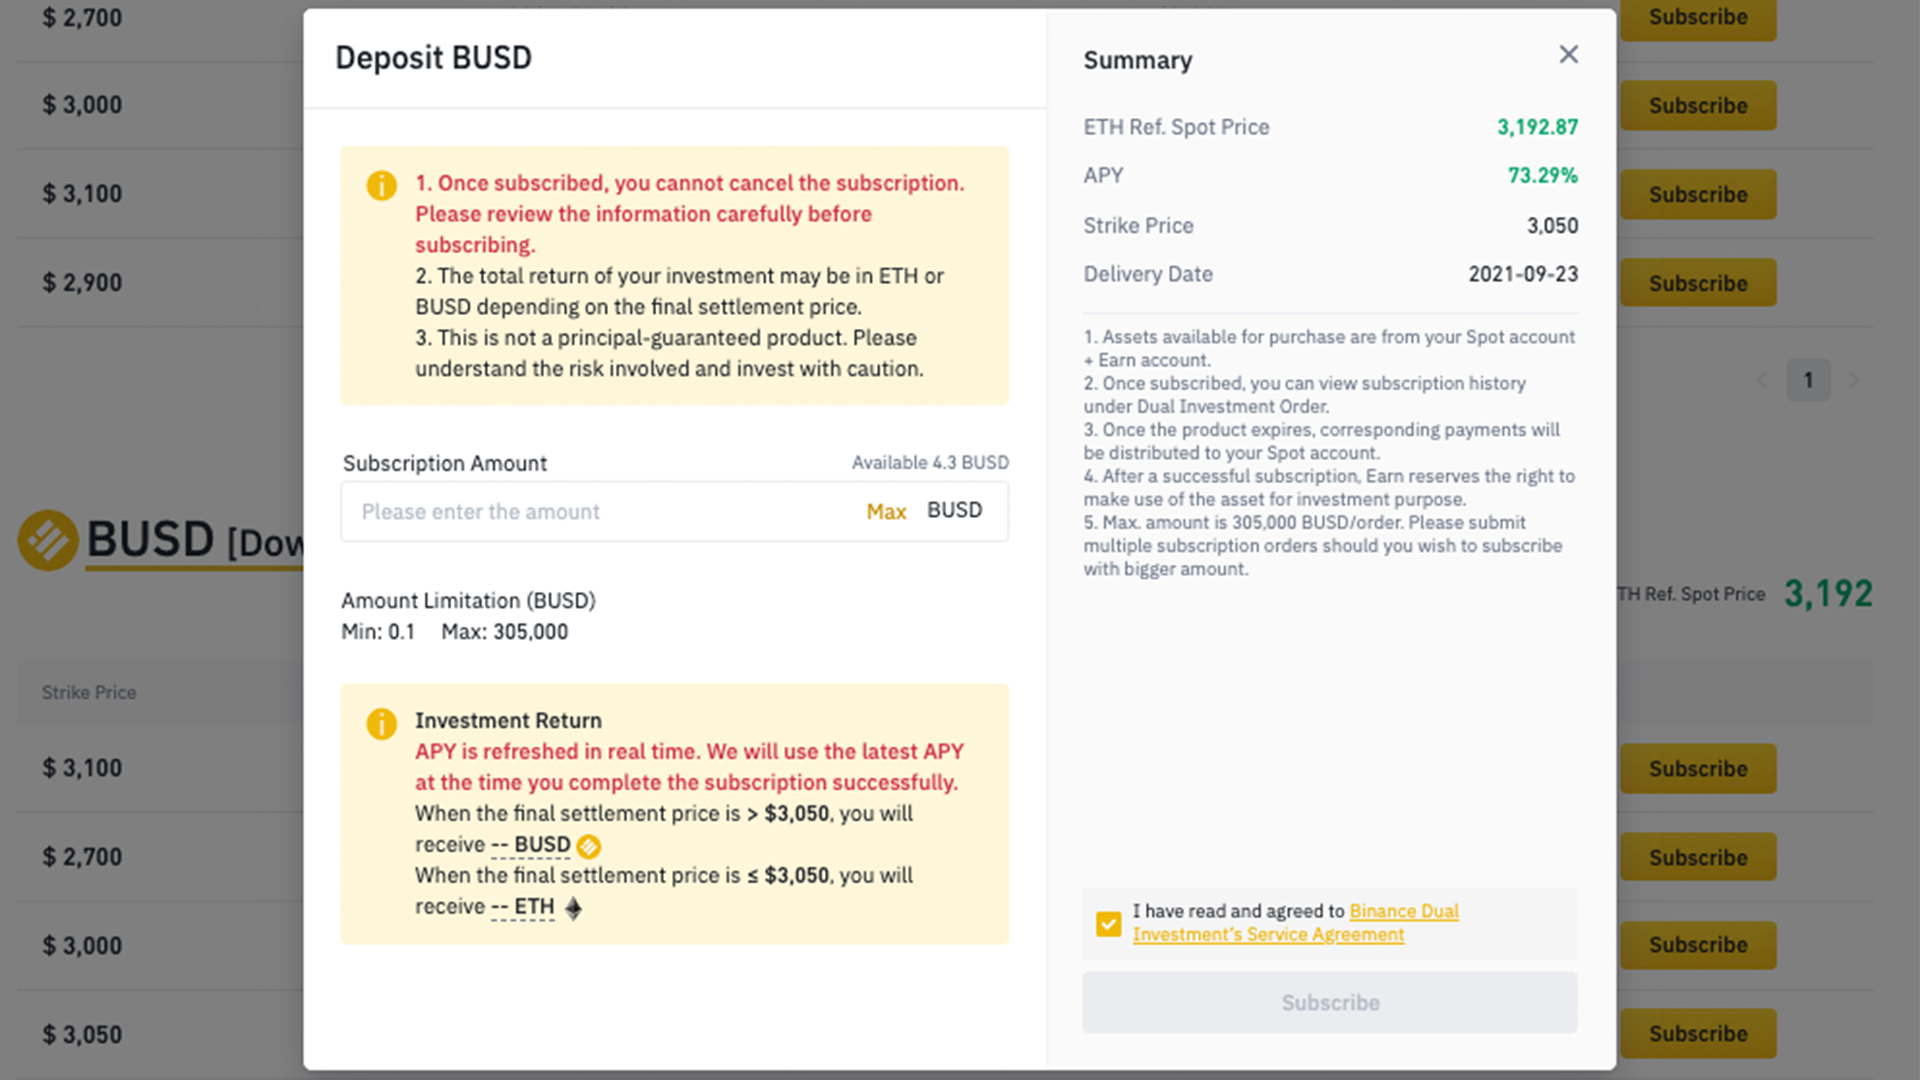 Binance Dual Investment confirmation screen